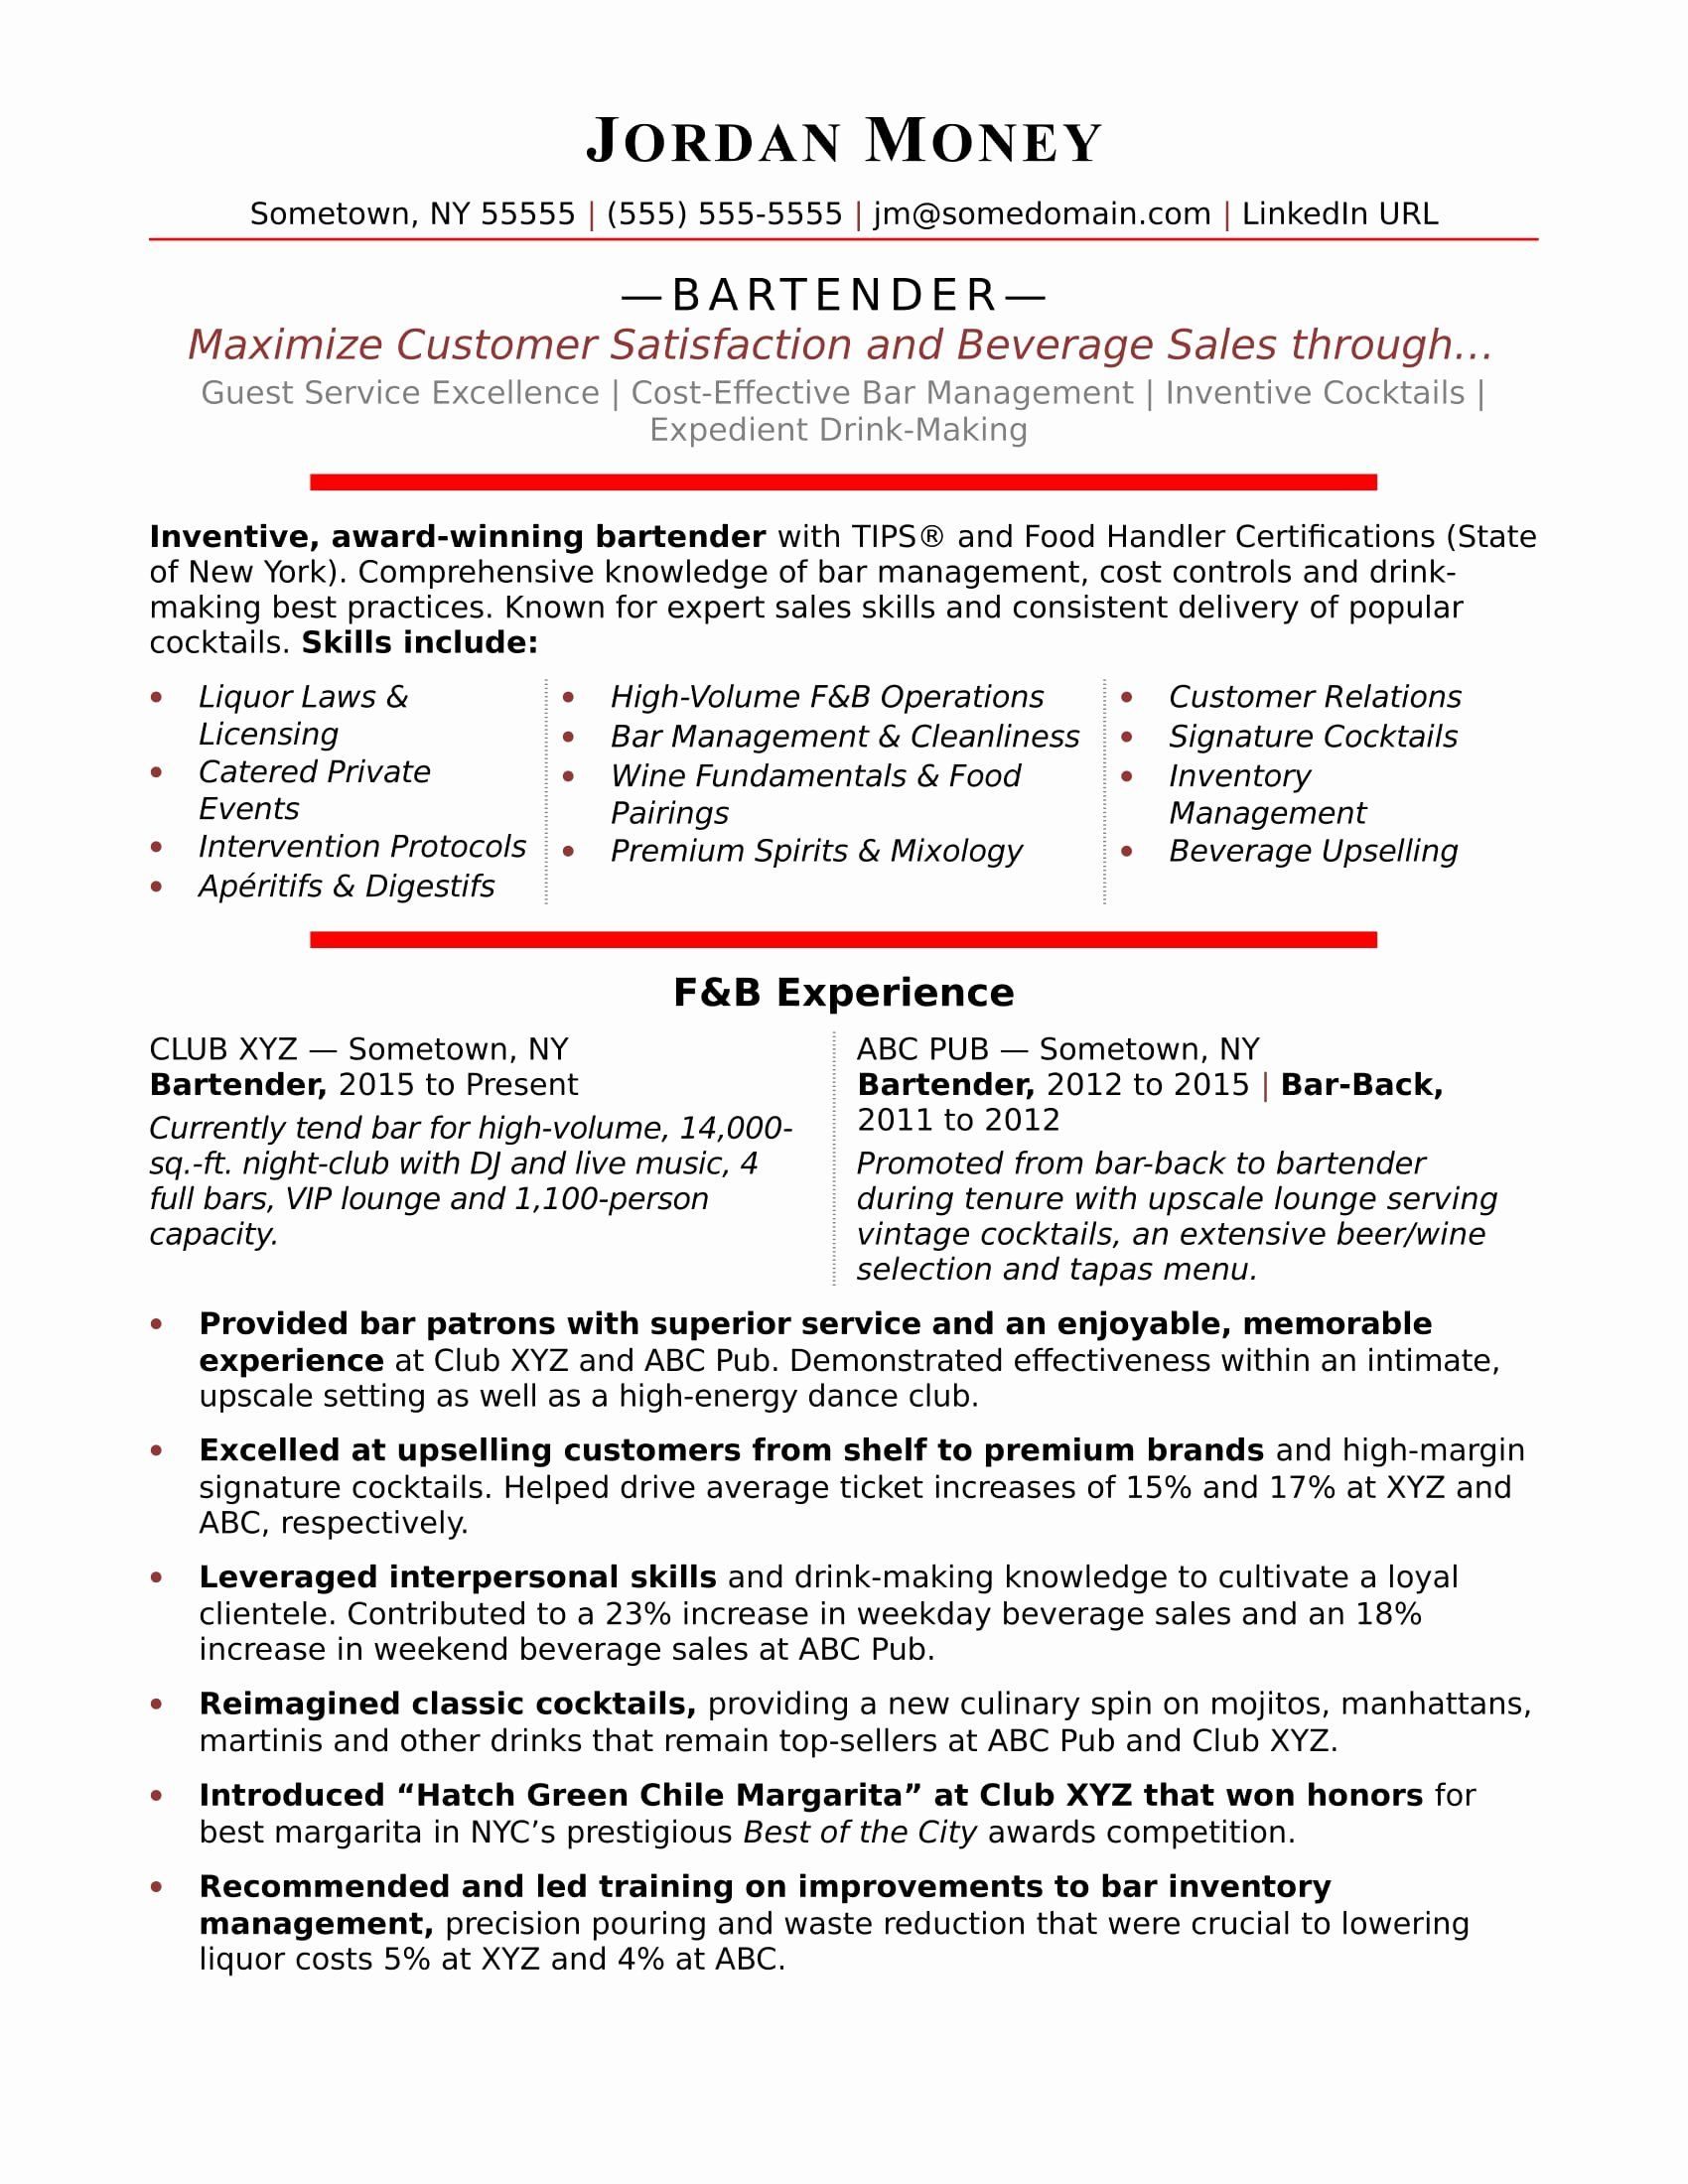 25 Free Bartender Resume Templates in 2020 Downloadable